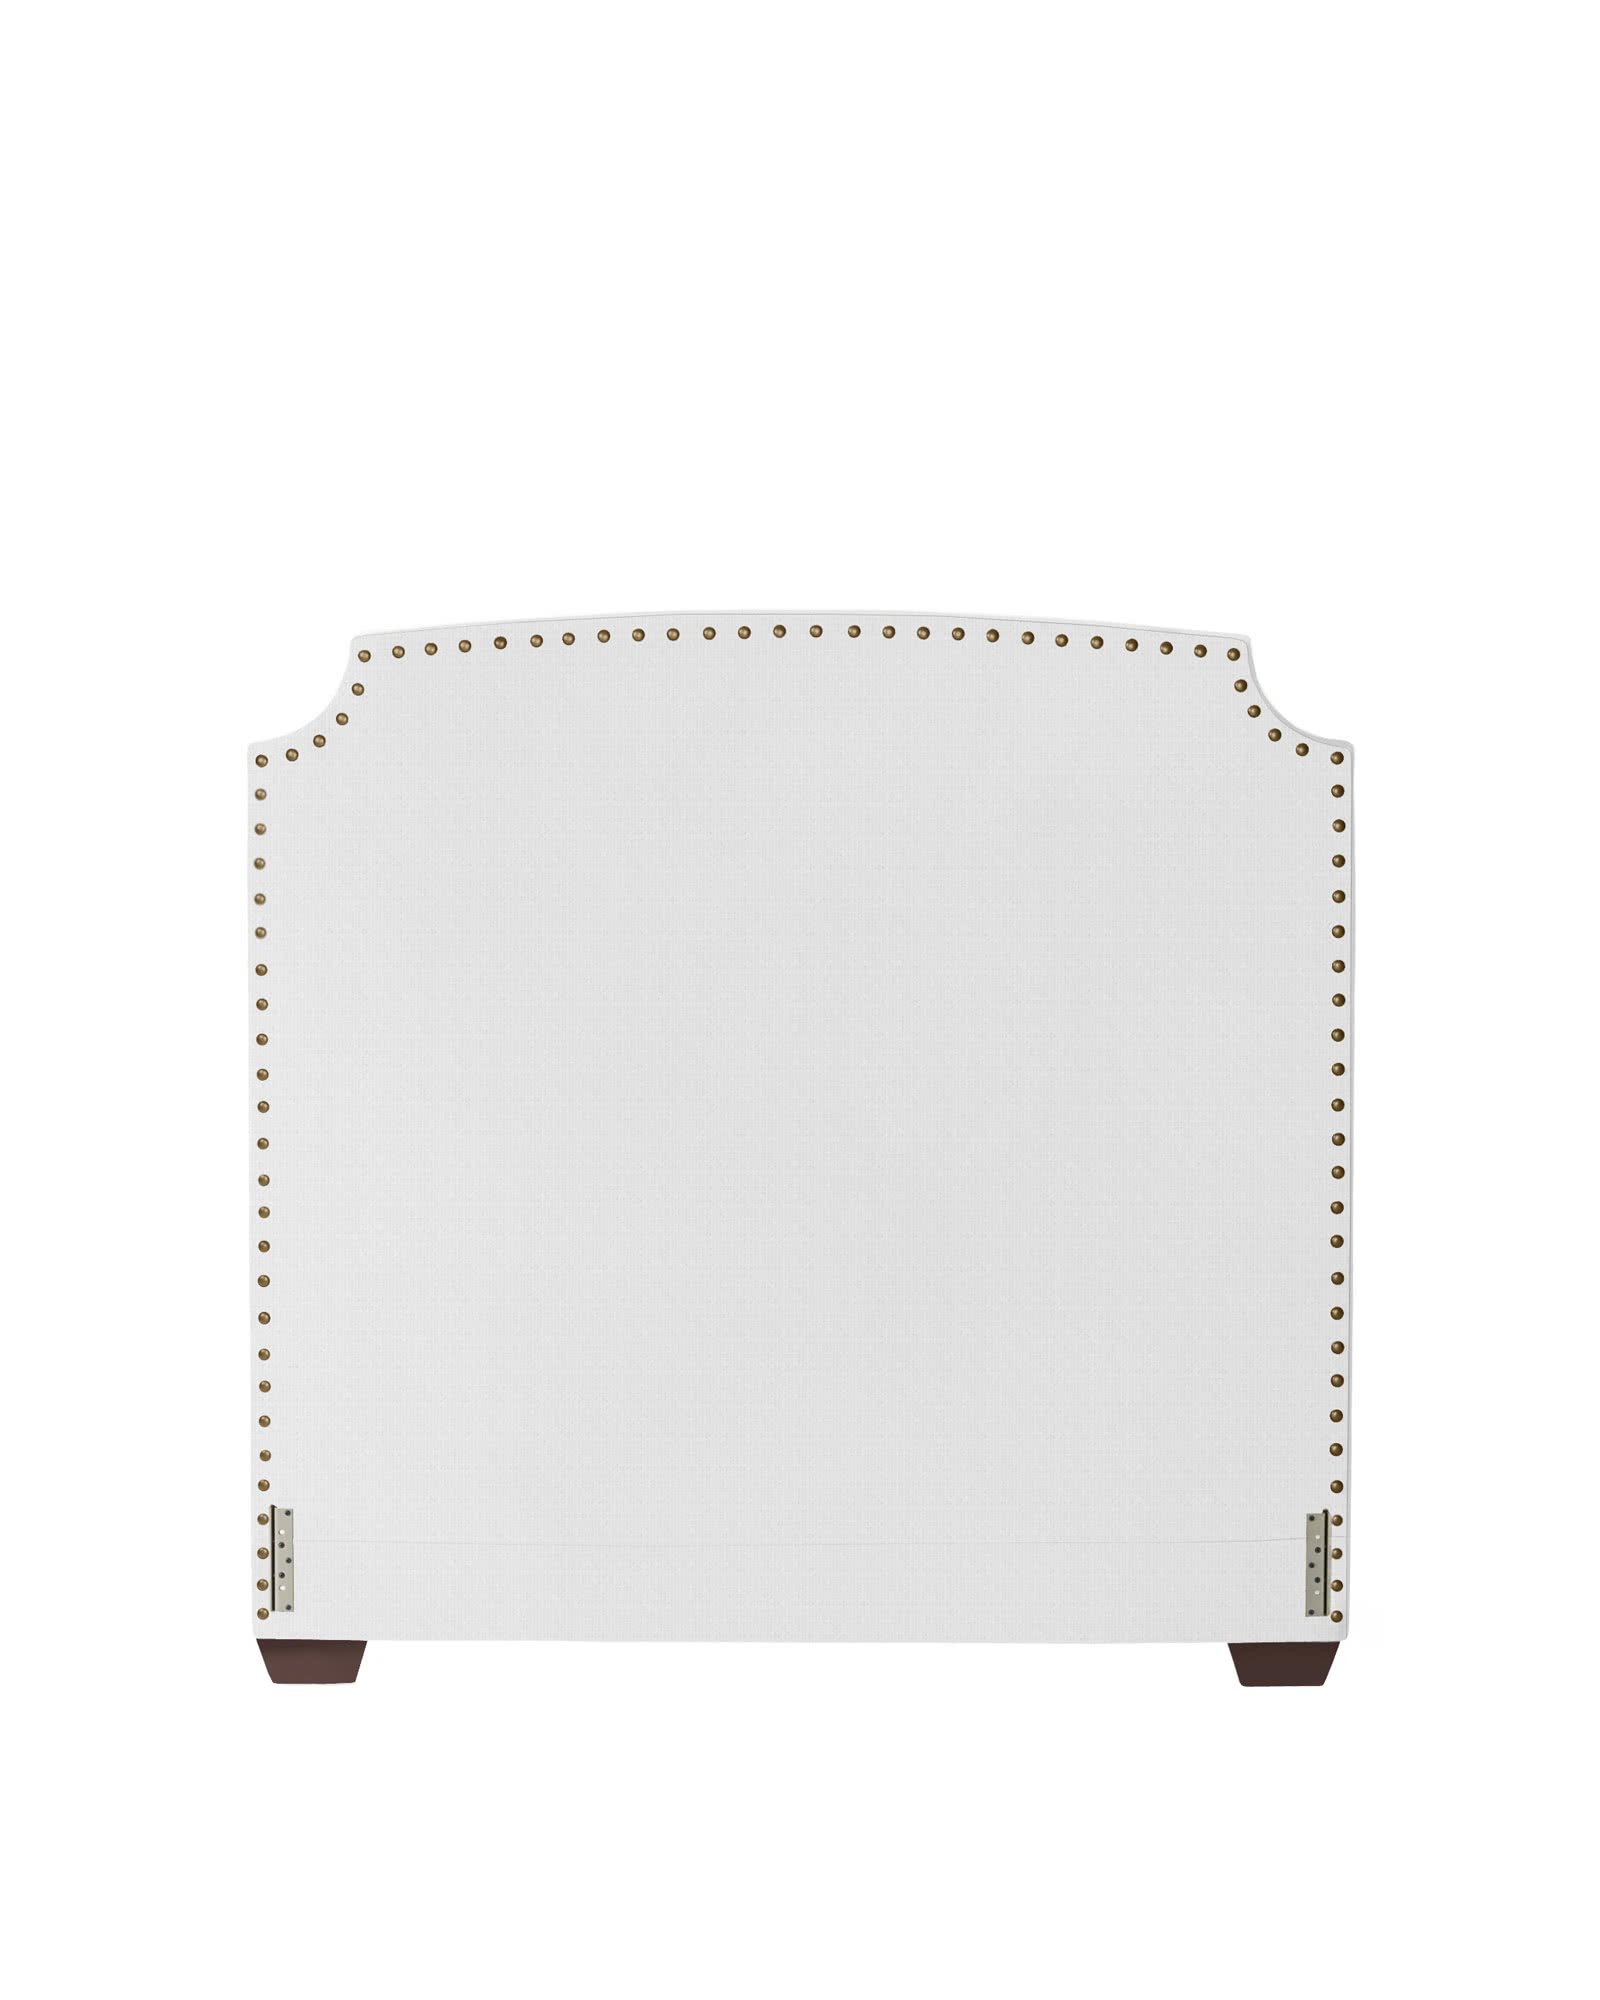 Tall Fillmore Headboard with Nailheads